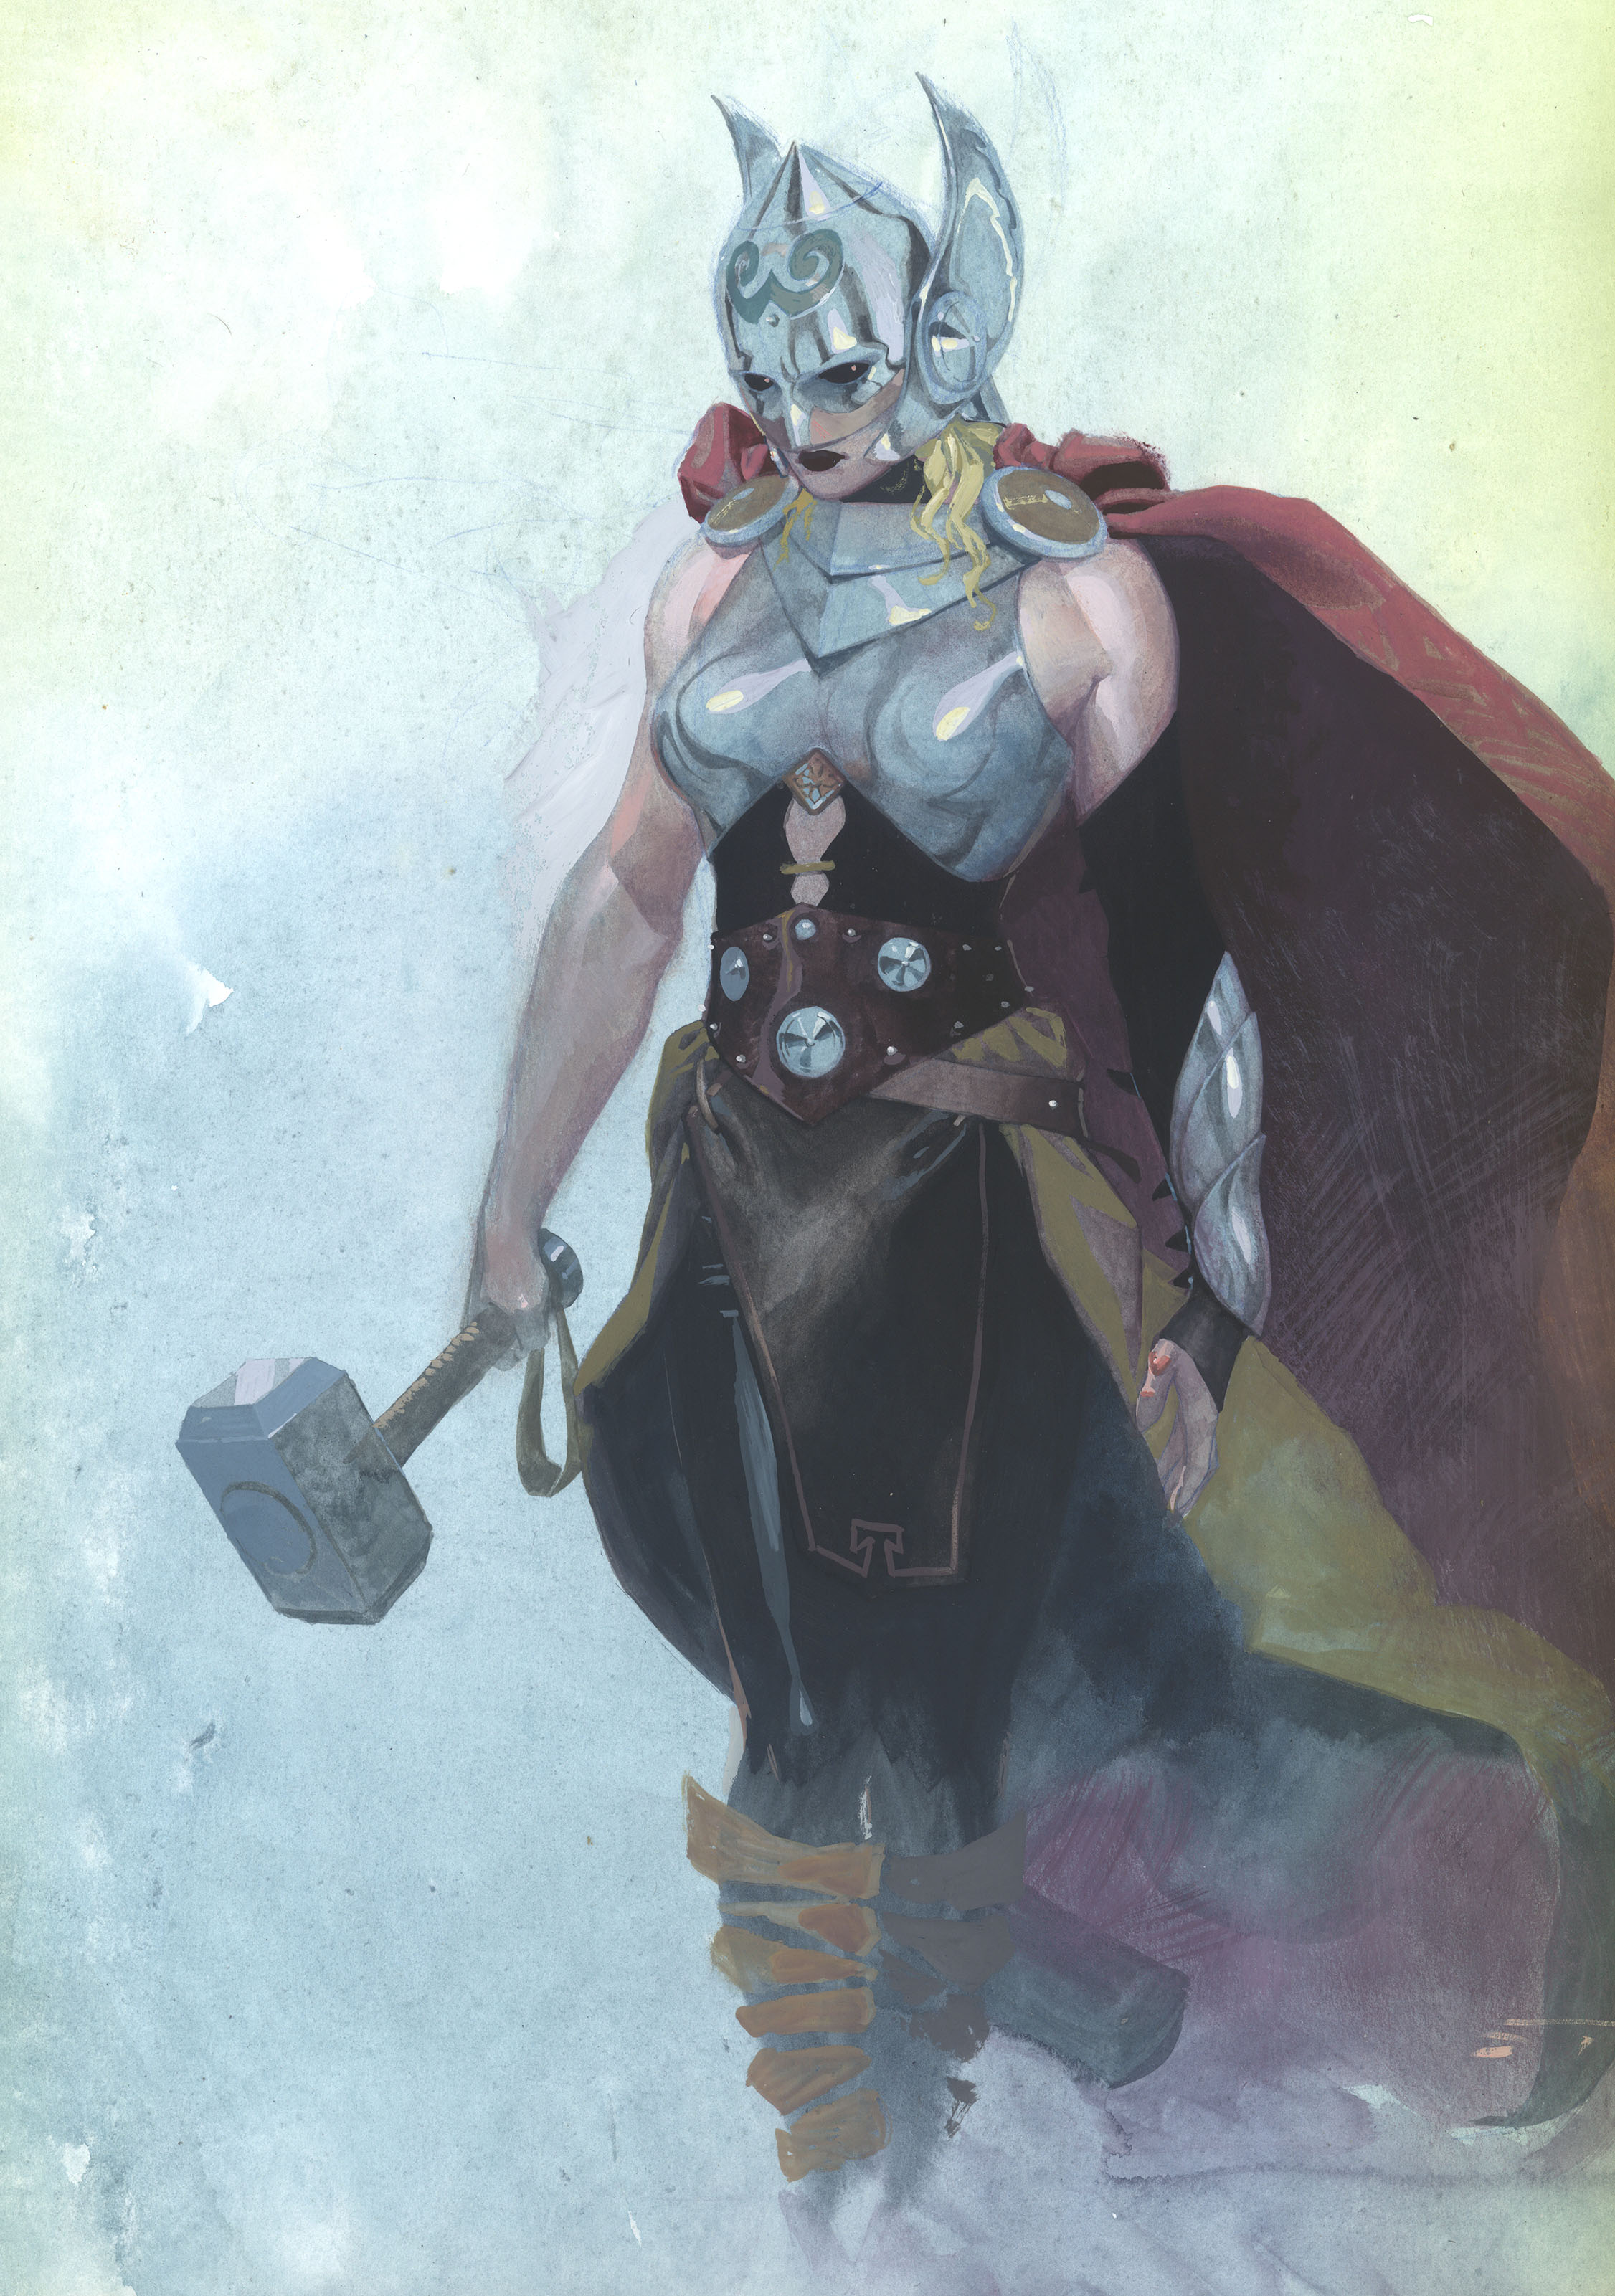 Meet the sexier Thor.